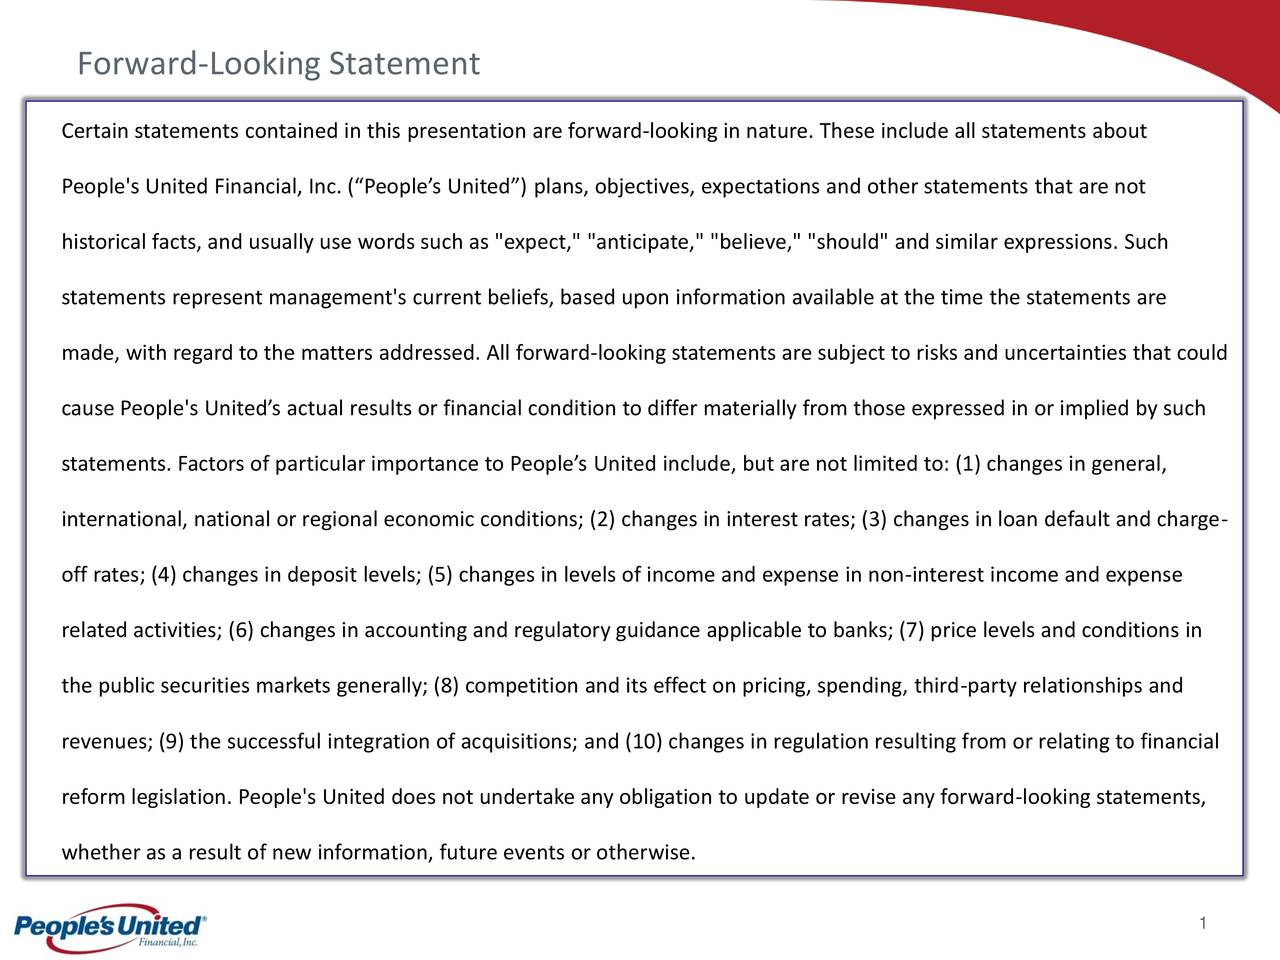 """Certain statements contained in this presentation are forward-looking in nature. These include all statements about People's United Financial, Inc. (""""People's United"""") plans, objectives, expectations and other statements that are not historical facts, and usually use words such as """"expect,"""" """"anticipate,"""" """"believe,"""" """"should"""" and similar expressions. Such statements represent management's current beliefs, based upon information available at the time the statements are made, with regard to the matters addressed. All forward-looking statements are subject to risks and uncertainties that could cause People's United's actual results or financial condition to differ materially from those expressed in or implied by such statements. Factors of particular importance to People's United include, but are not limited to: (1) changes in general, international, national or regional economic conditions; (2) changes in interest rates; (3) changes in loan default and charge- off rates; (4) changes in deposit levels; (5) changes in levels of income and expense in non-interest income and expense related activities; (6) changes in accounting and regulatory guidance applicable to banks; (7) price levels and conditions in the public securities markets generally; (8) competition and its effect on pricing, spending, third-party relationships and revenues; (9) the successful integration of acquisitions; and (10) changes in regulation resulting from or relating to financial reform legislation. People's United does not undertake any obligation to update or revise any forward-looking statements, whether as a result of new information, future events or otherwise. 1"""